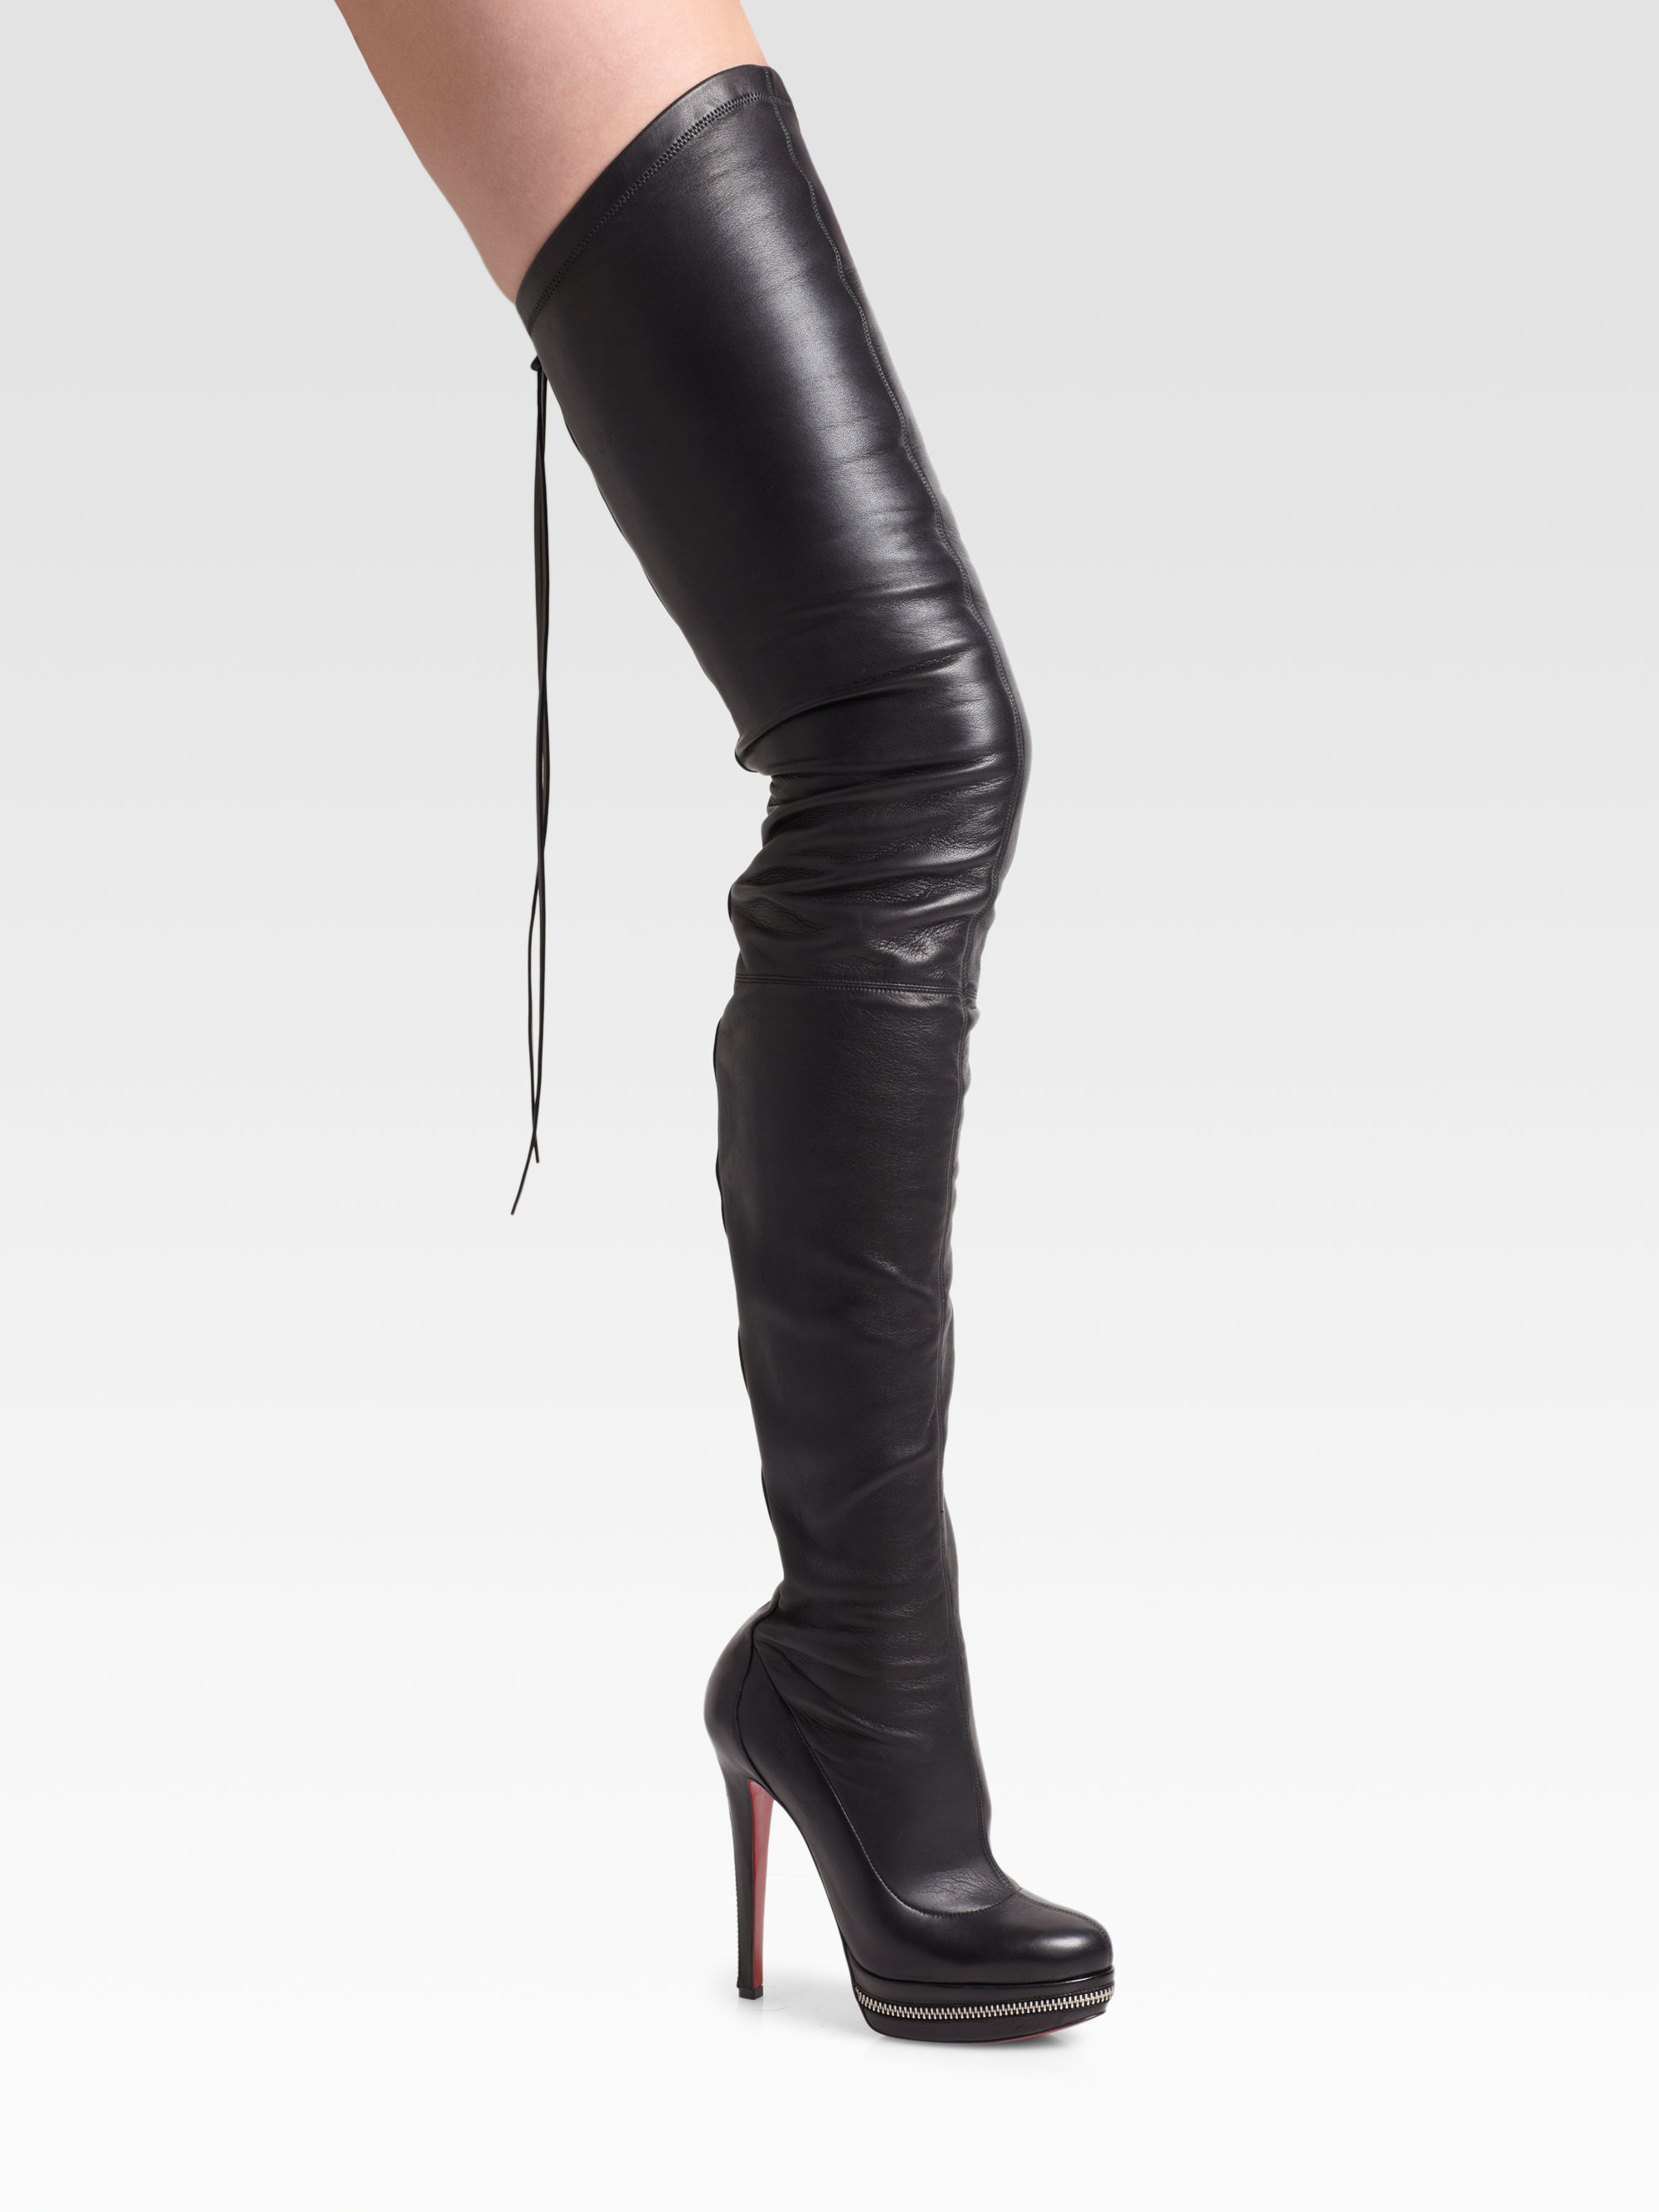 Lyst - Christian Louboutin Unique Thigh High Platform -8279